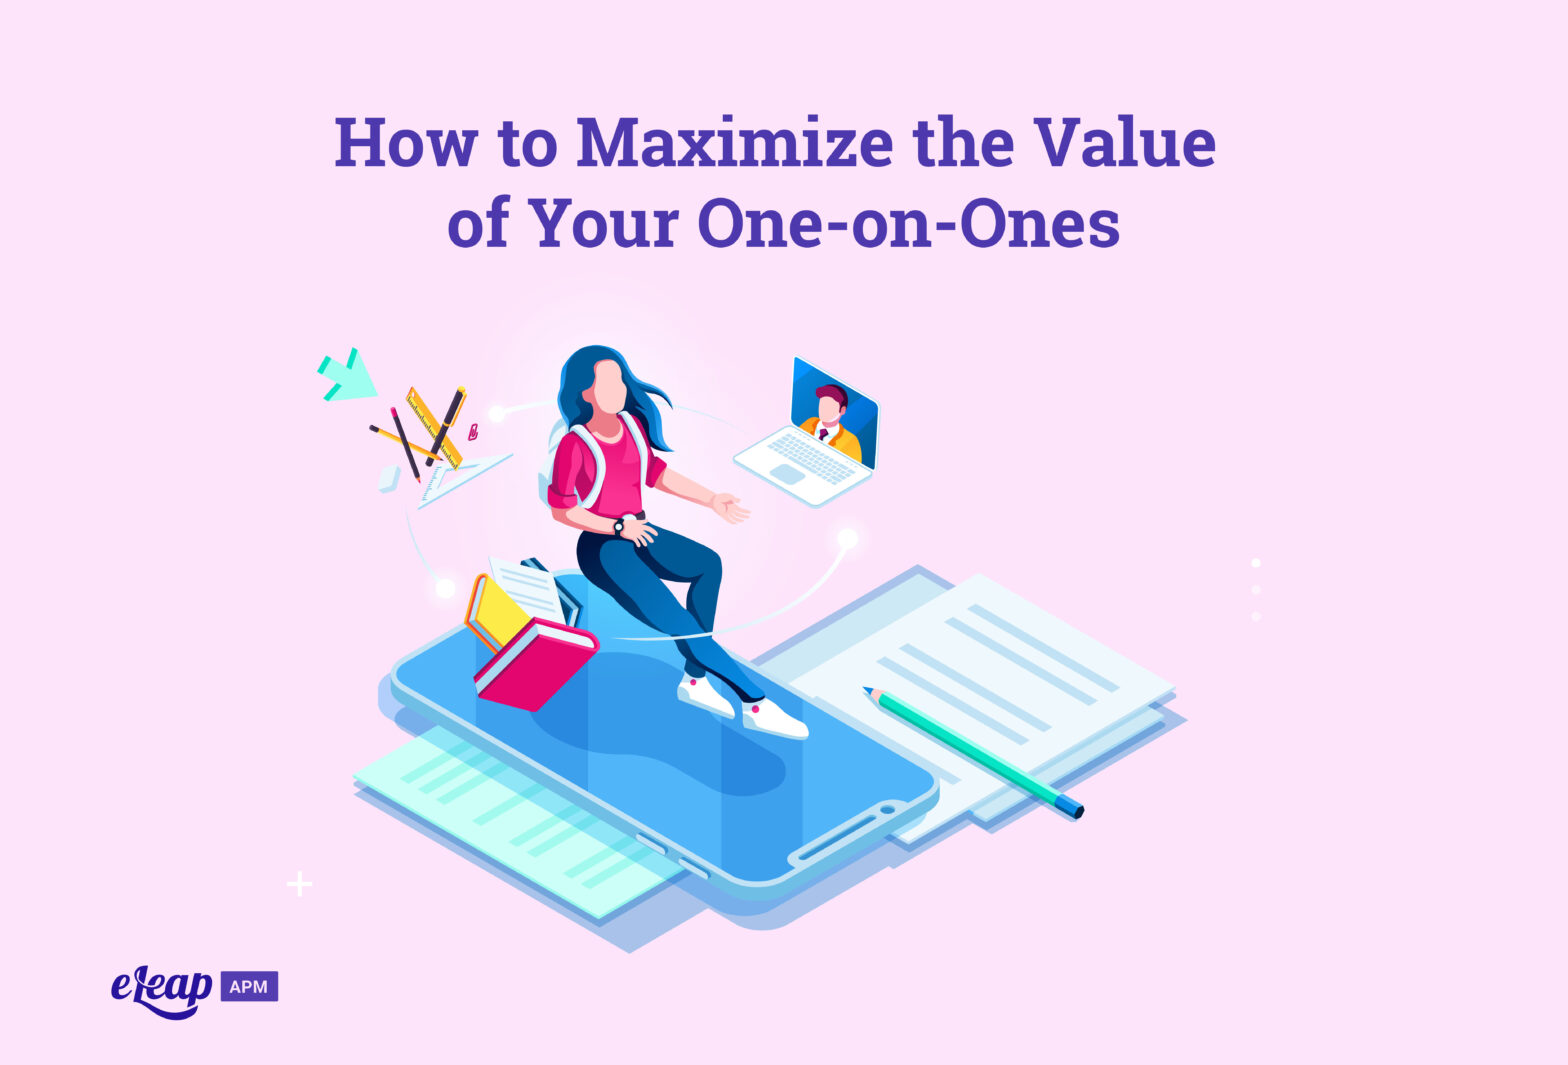 How to Maximize the Value of Your One-on-Ones